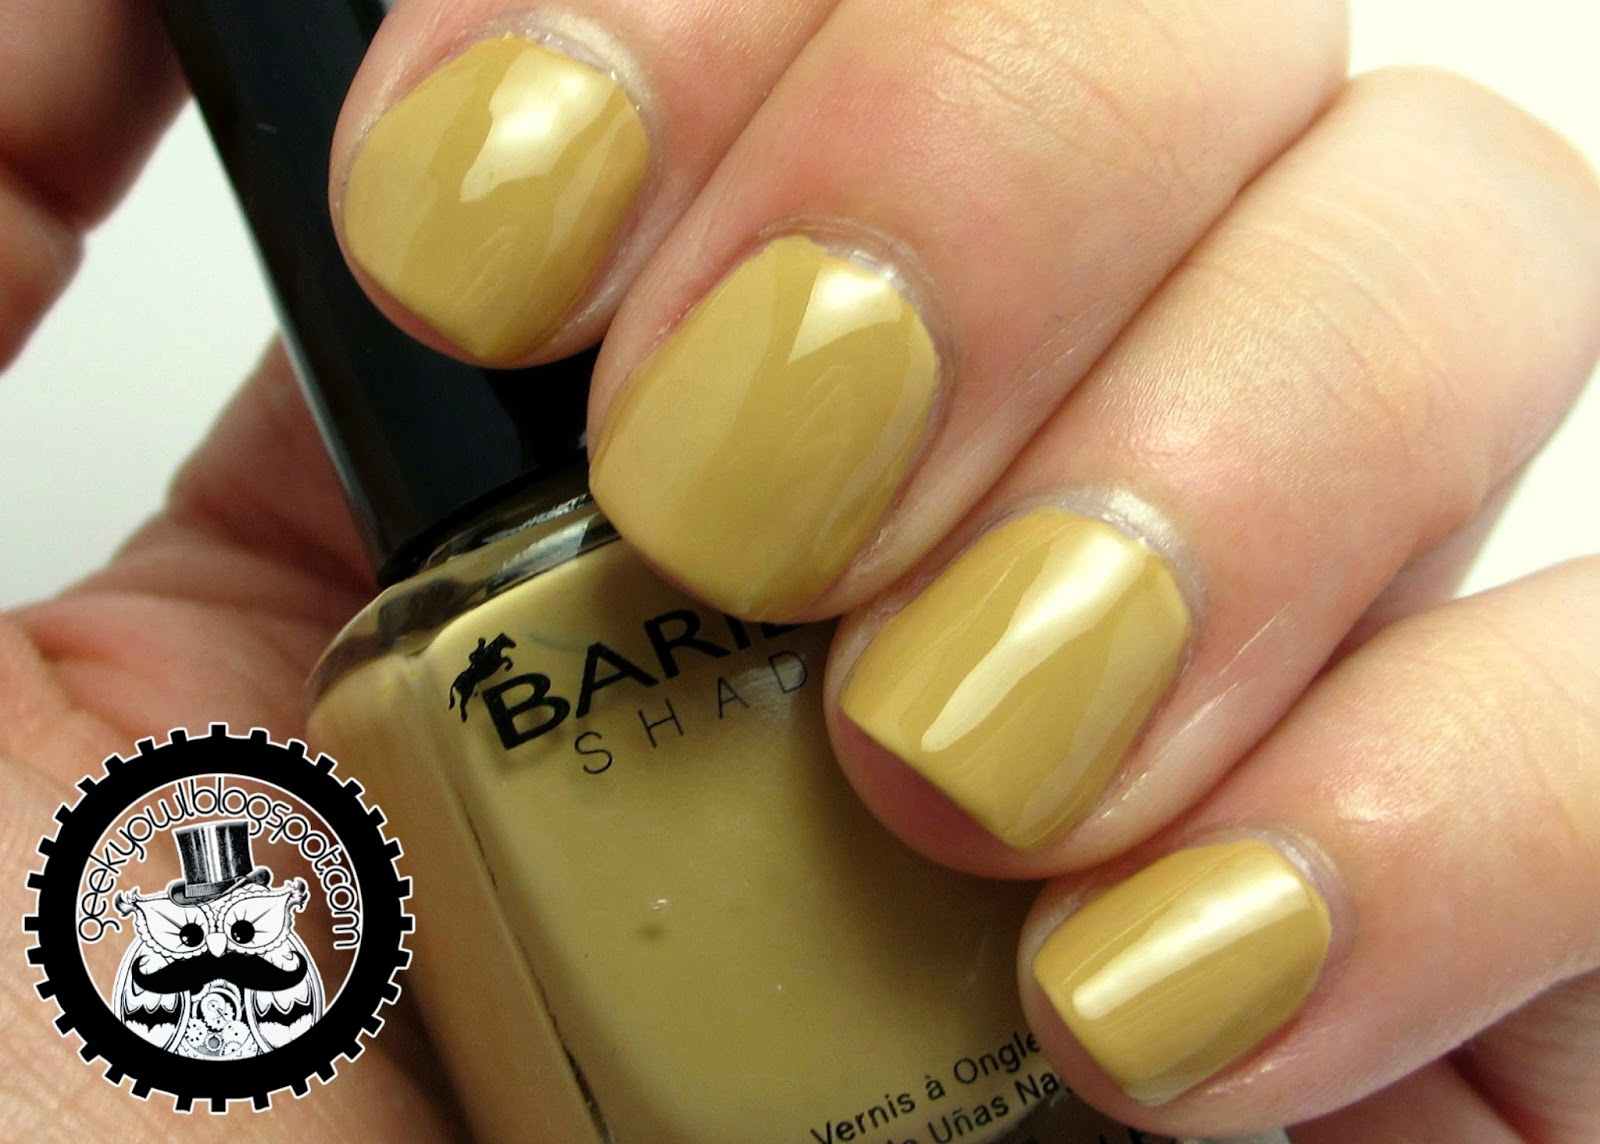 http://geekyowl.blogspot.com/2014/03/barielle-velvets-spring-2014-review.html